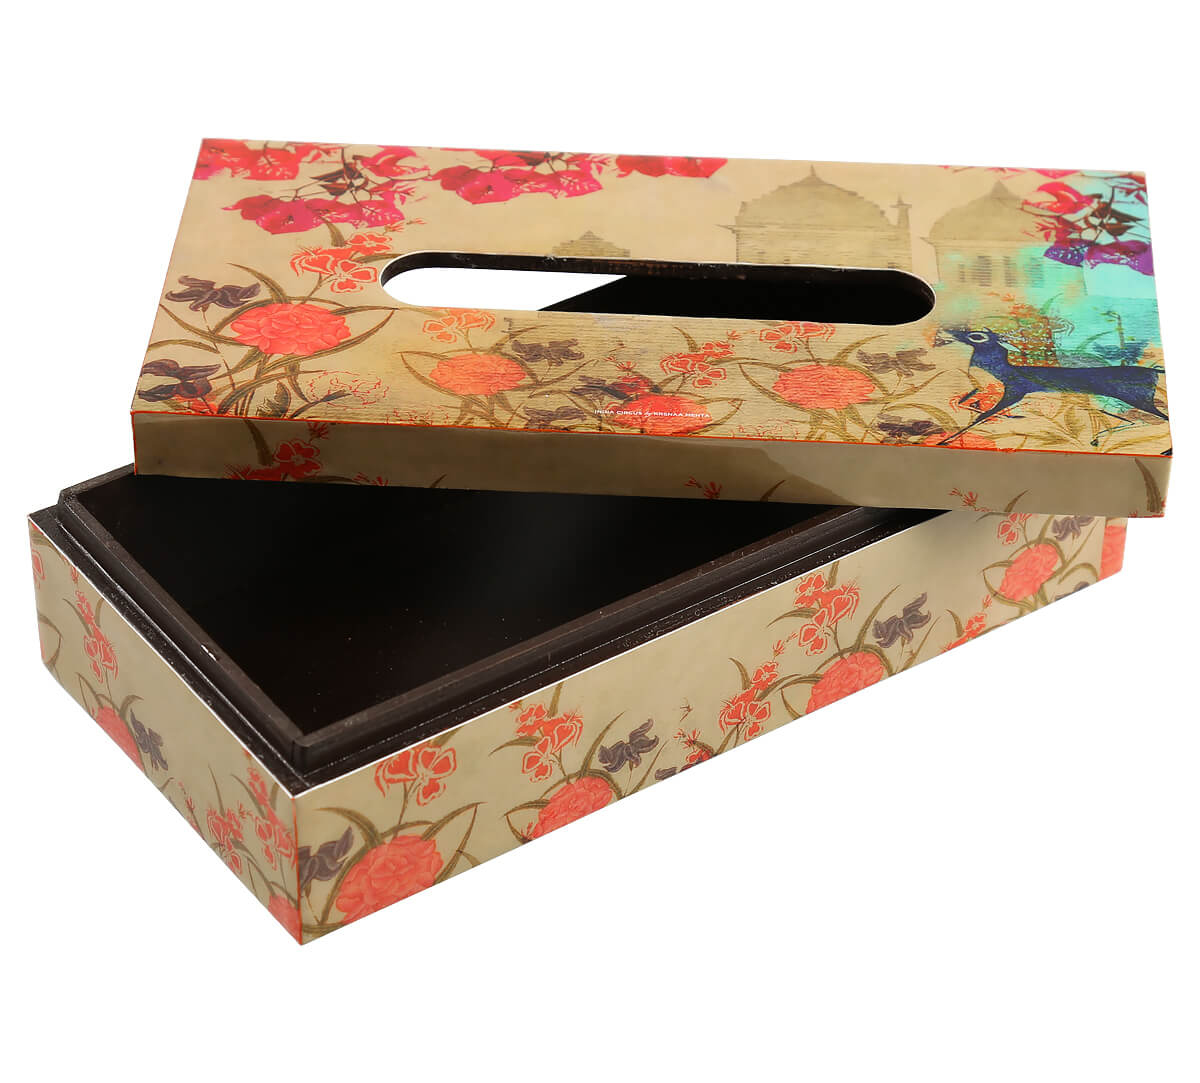 Palaces in Paradise Tissue Box Holder